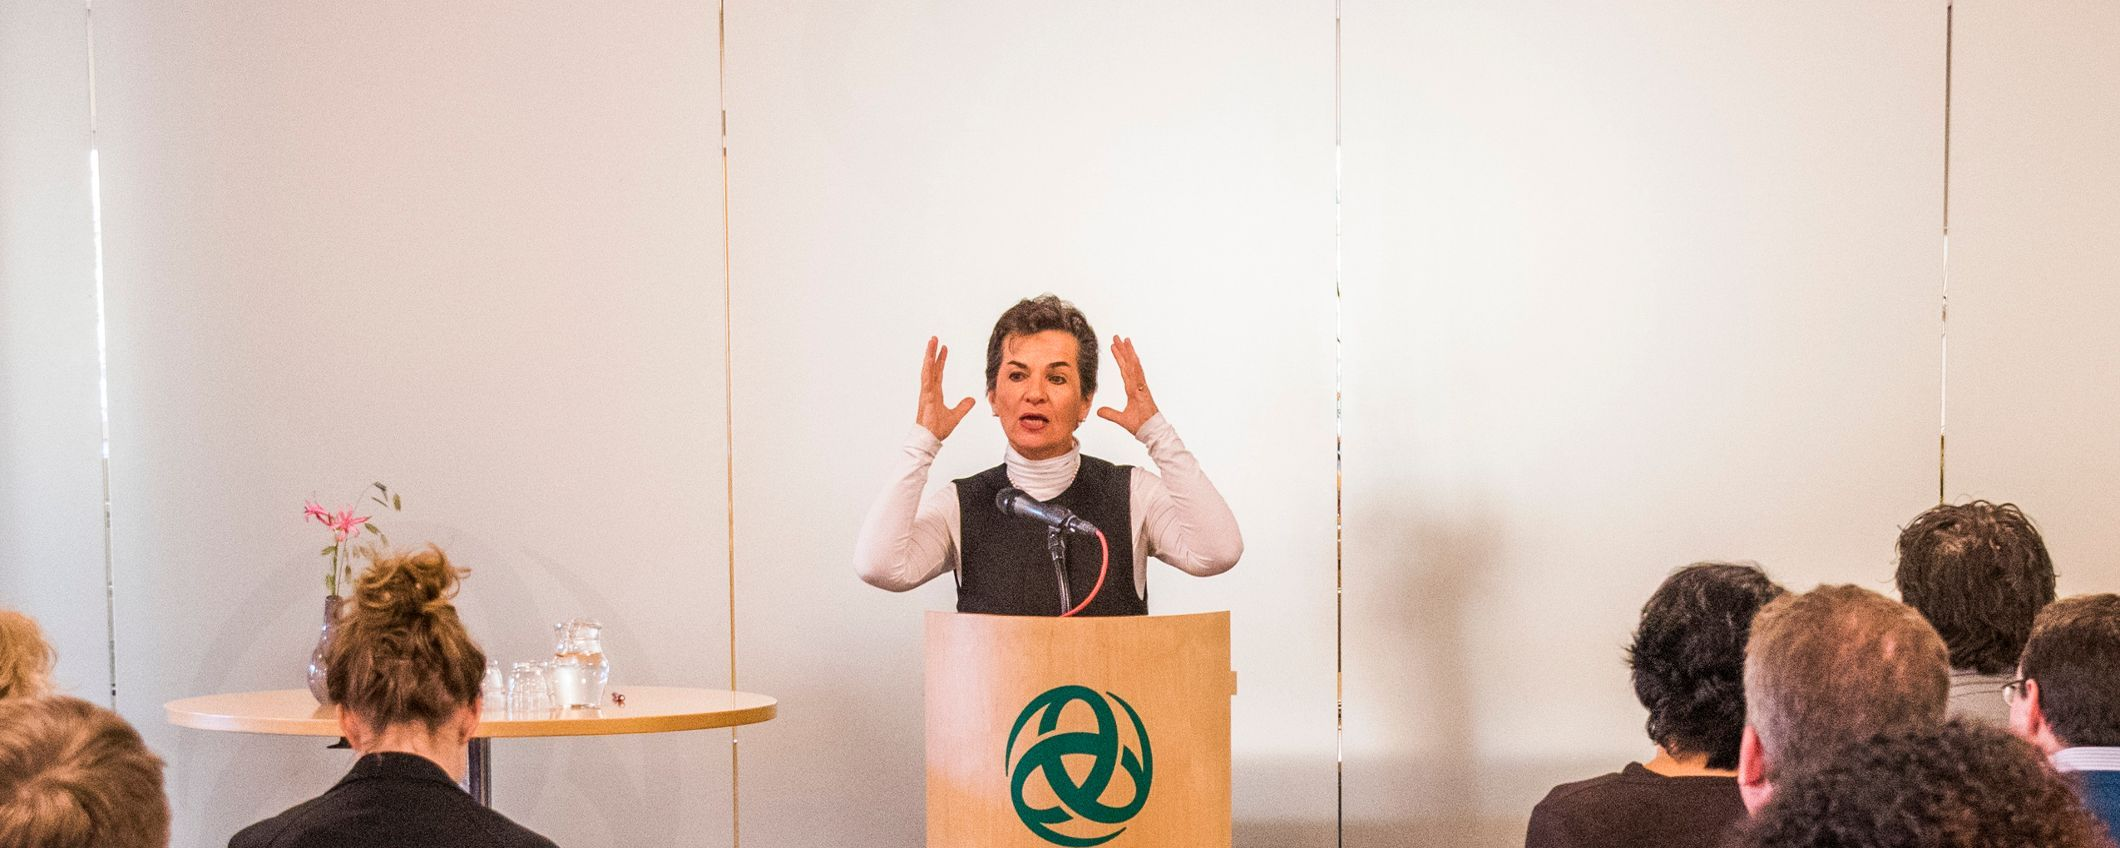 The fate of our climate (4), Christiana Figueres 2017